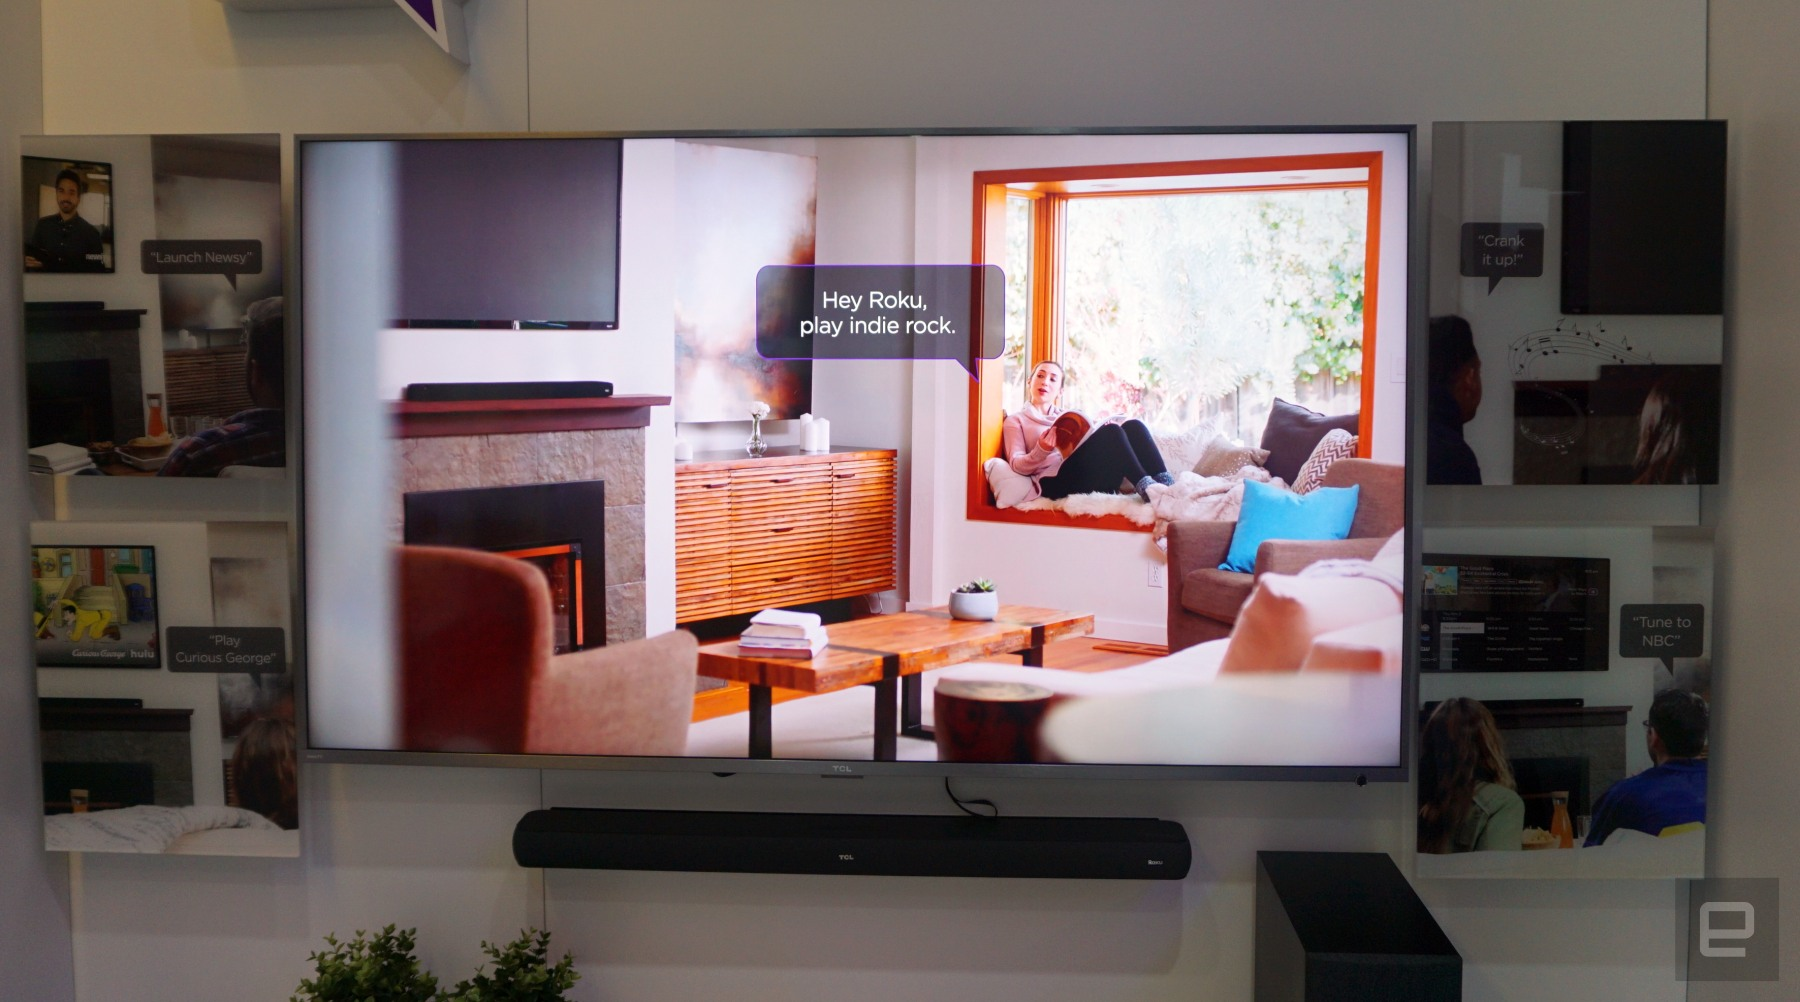 TCL Roku TV & Soundbar